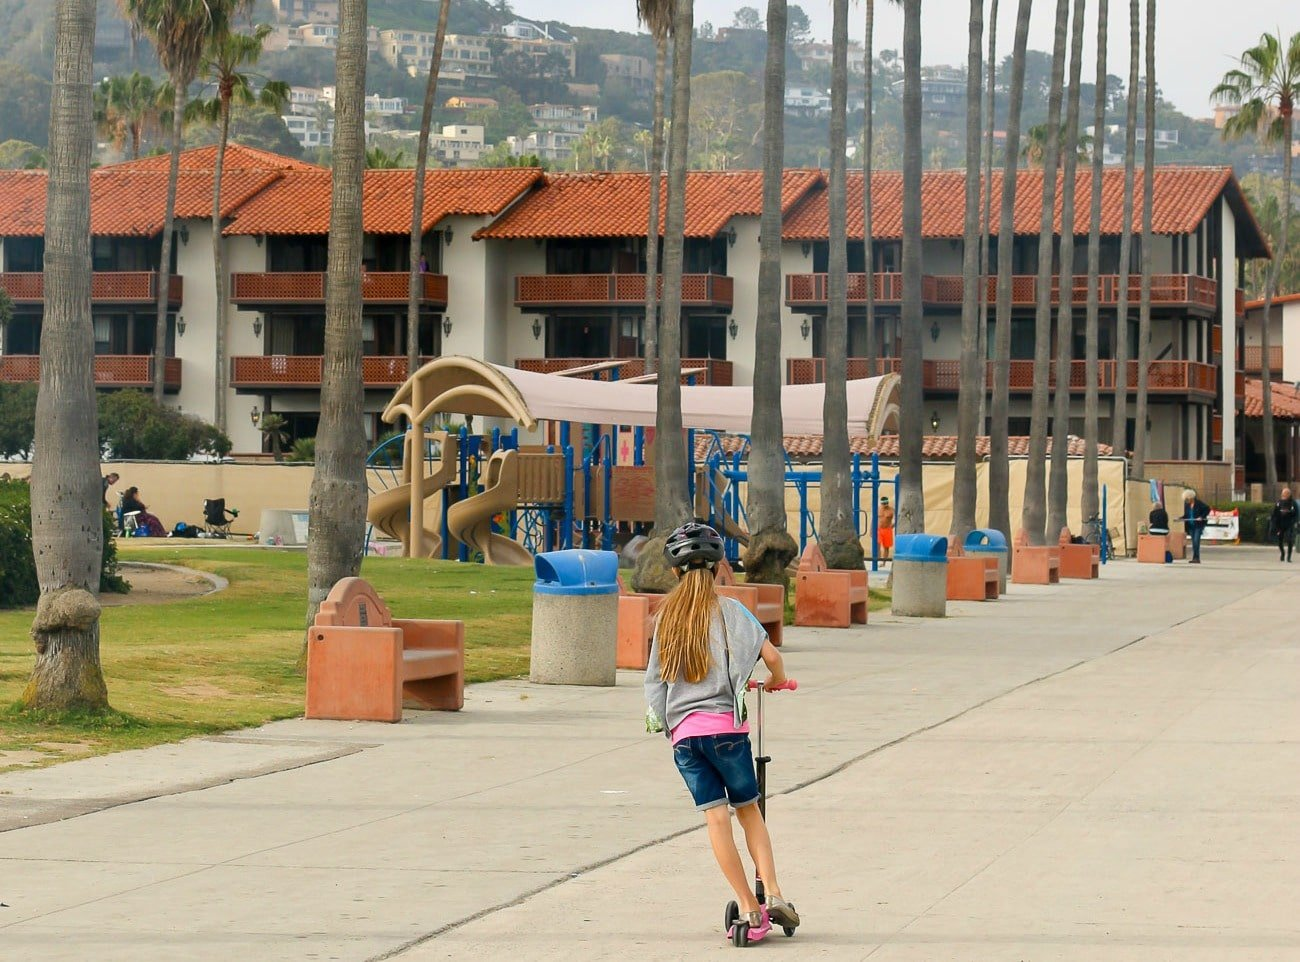 Kellogg Park playground for kids at La Jolla Shores Beach.